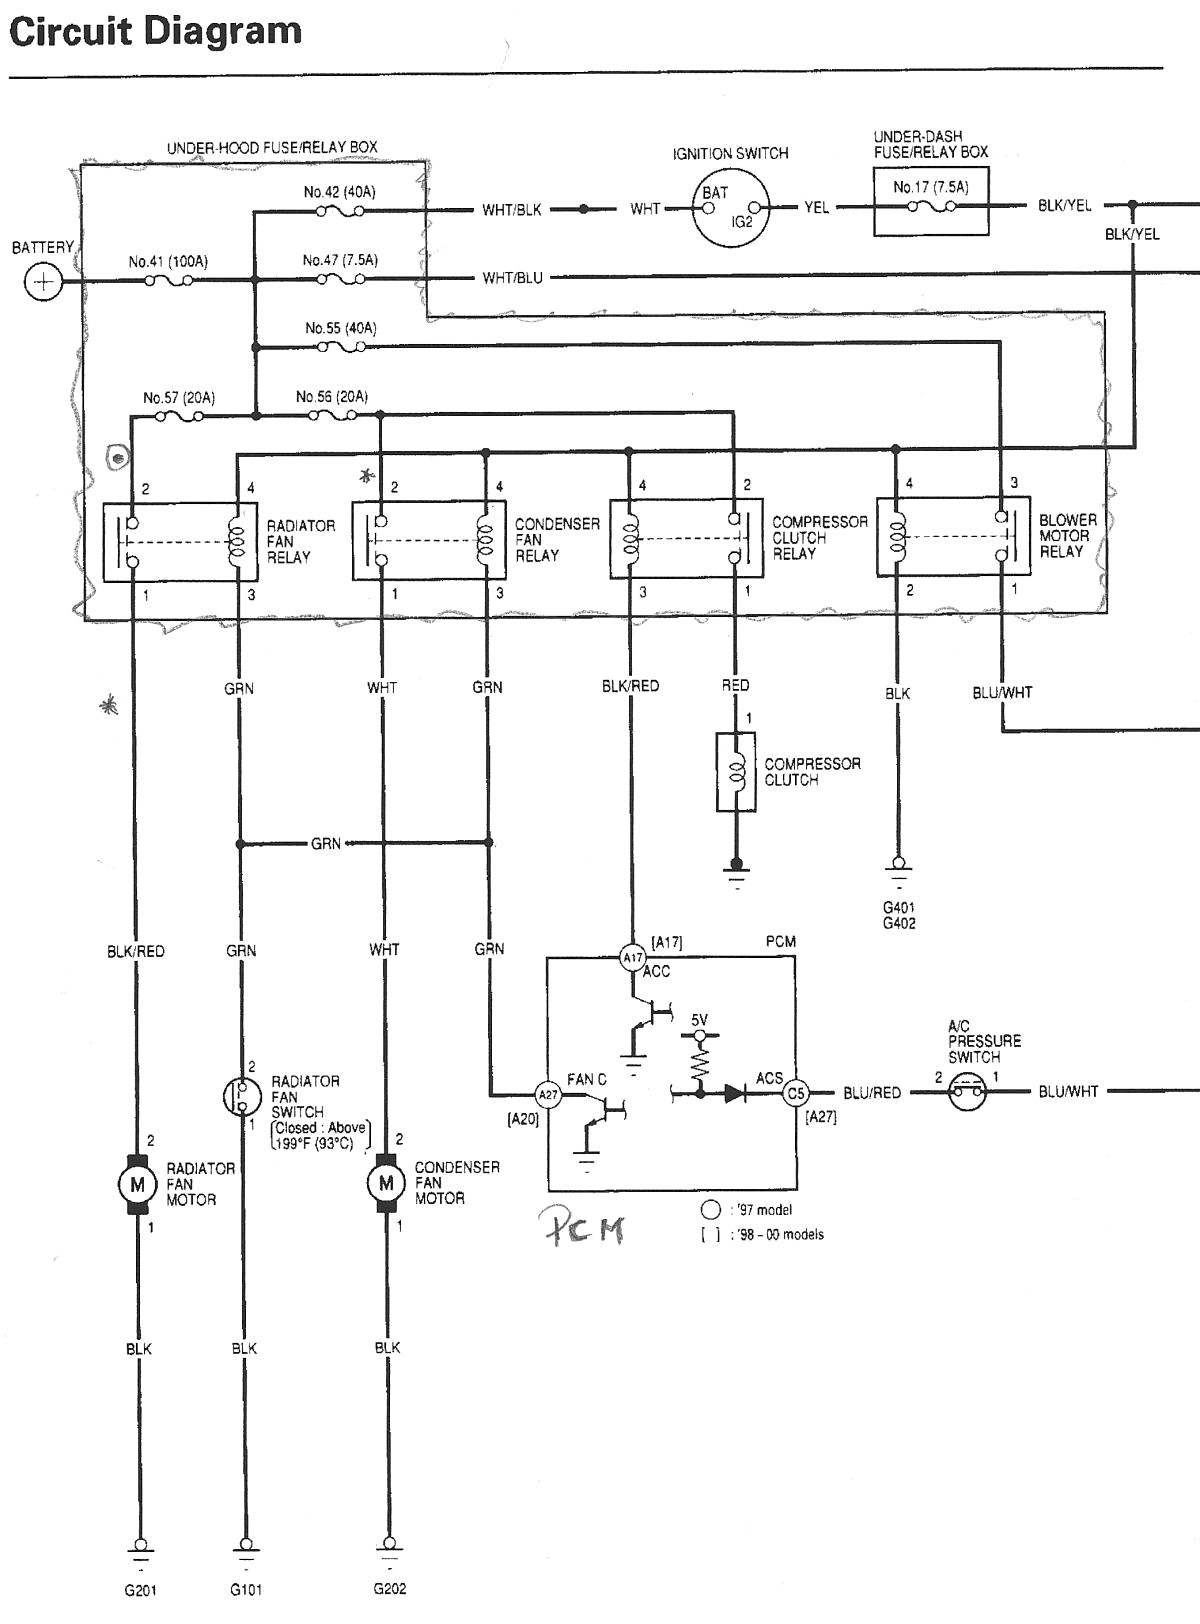 93 Honda Accord Engine Diagram 97 Honda Accord Transmission Diagram Of 93 Honda Accord Engine Diagram